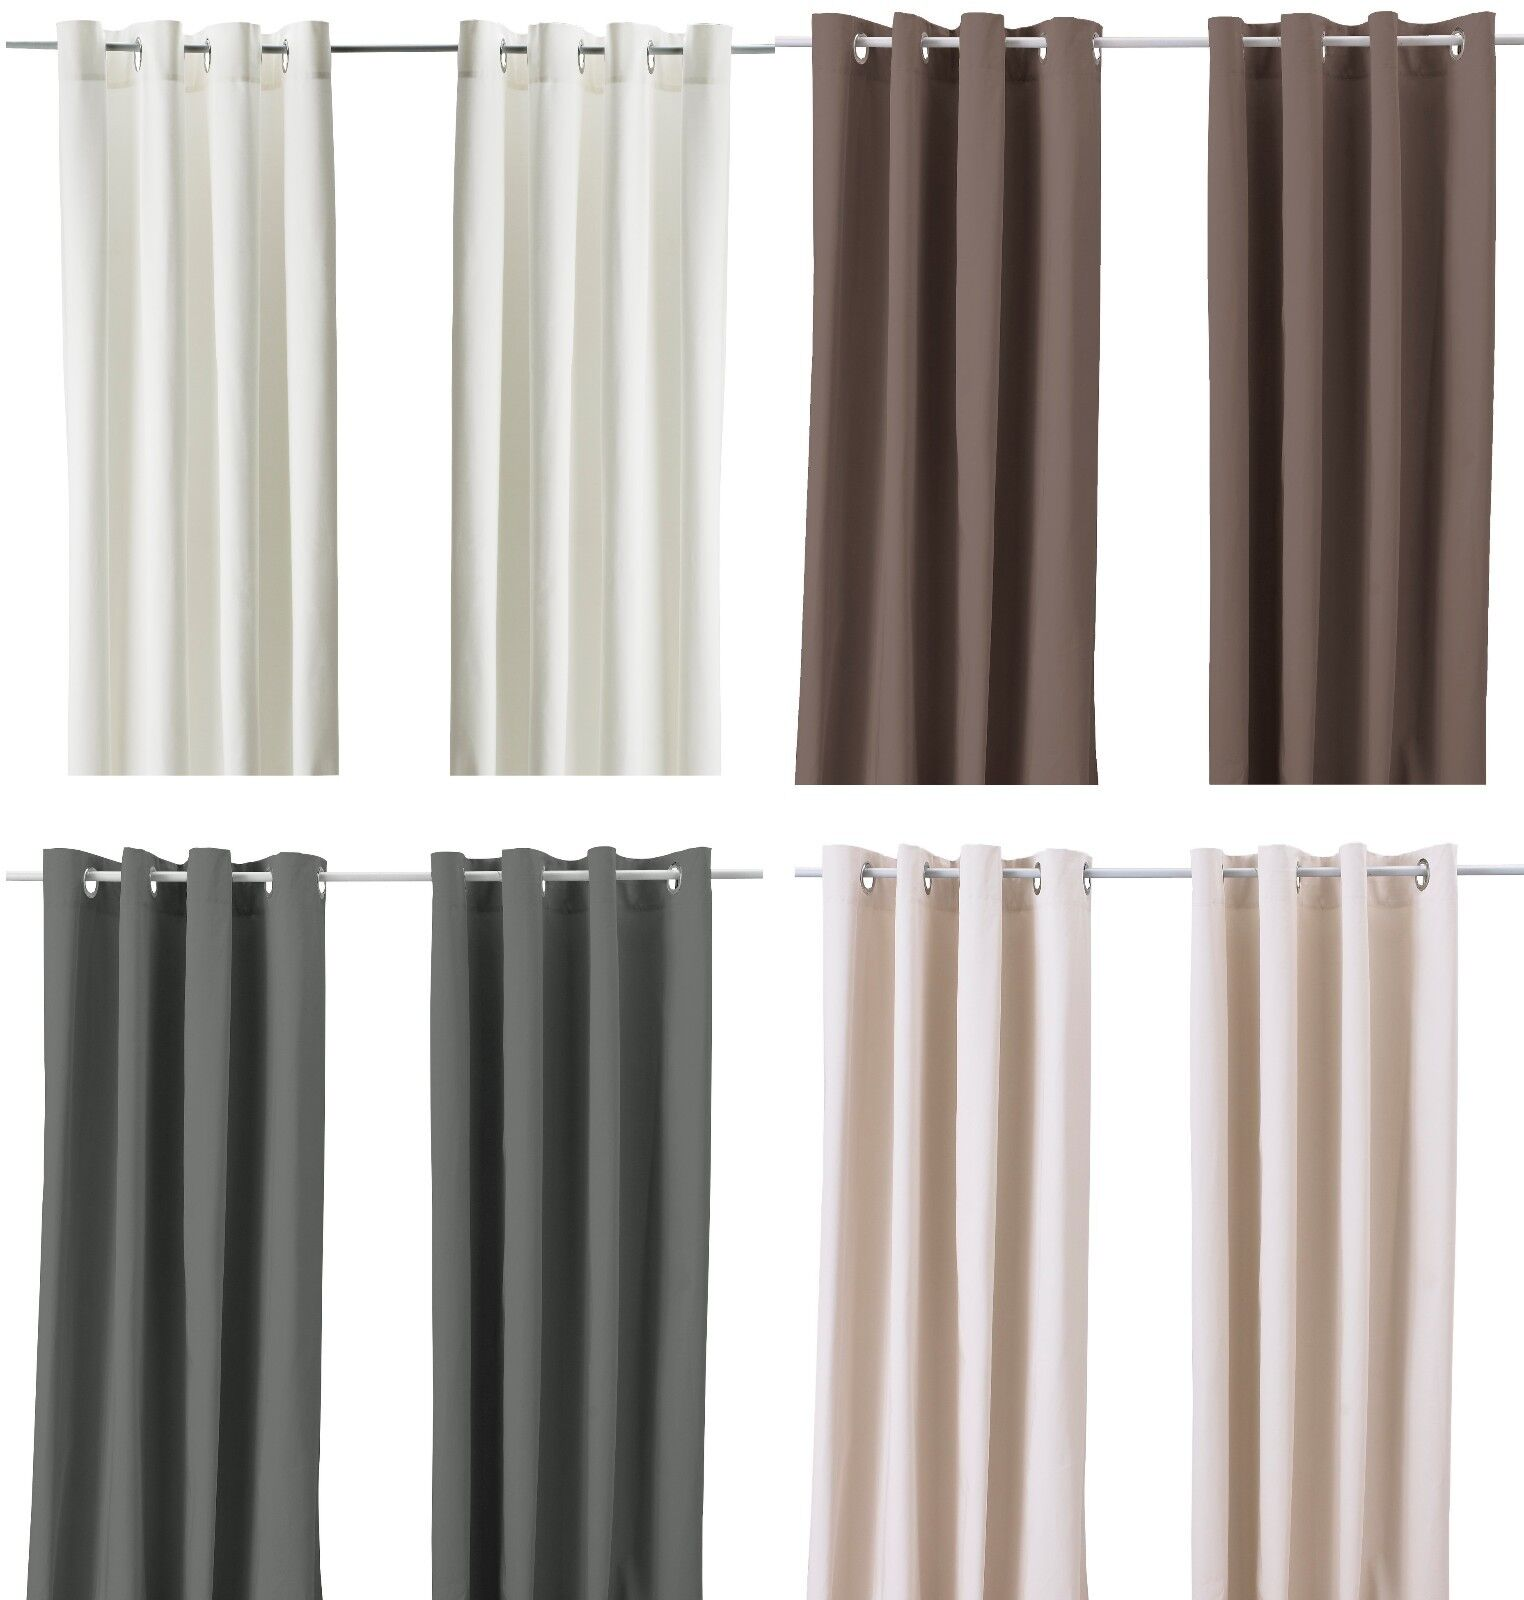 Ikea merete pair of curtains 2 panels brown purple beige Beige curtains